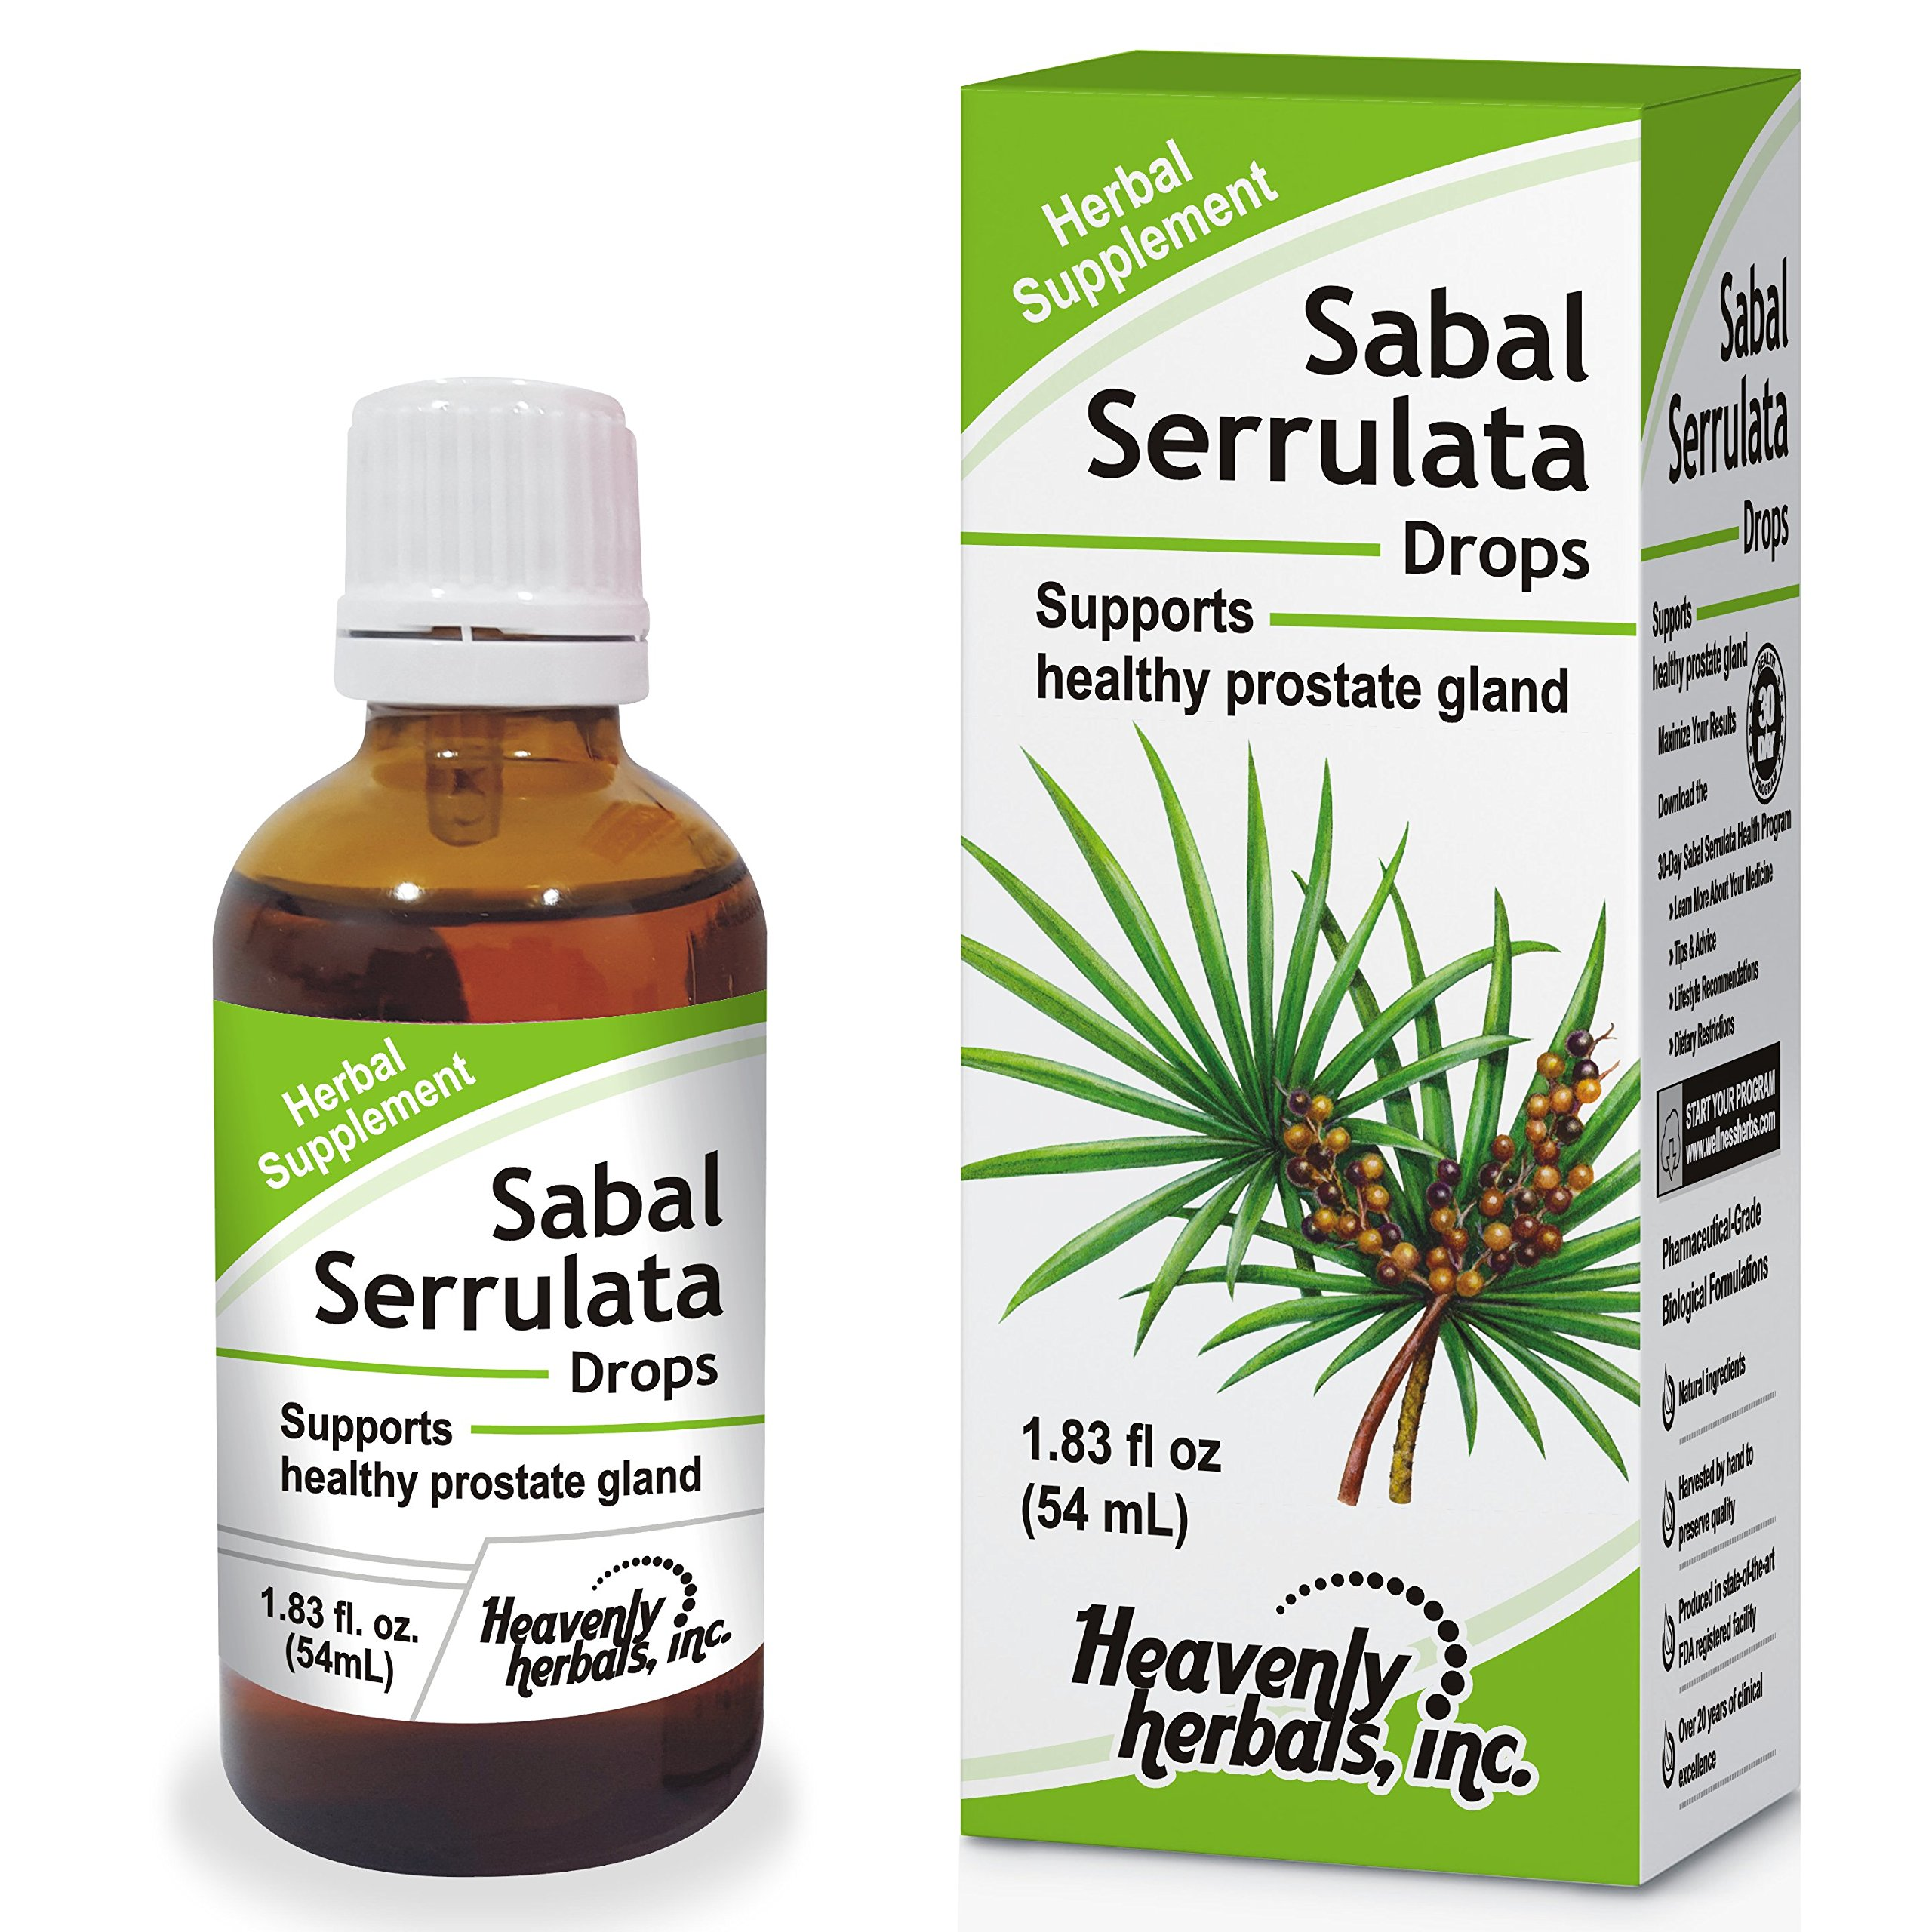 Amazon.com: Sabal Serrulata Drops, Supports Healthy Prostate Gland, 1.83 oz by Heavenly Herbals, Inc. (Alcohol Free): Health & Personal Care